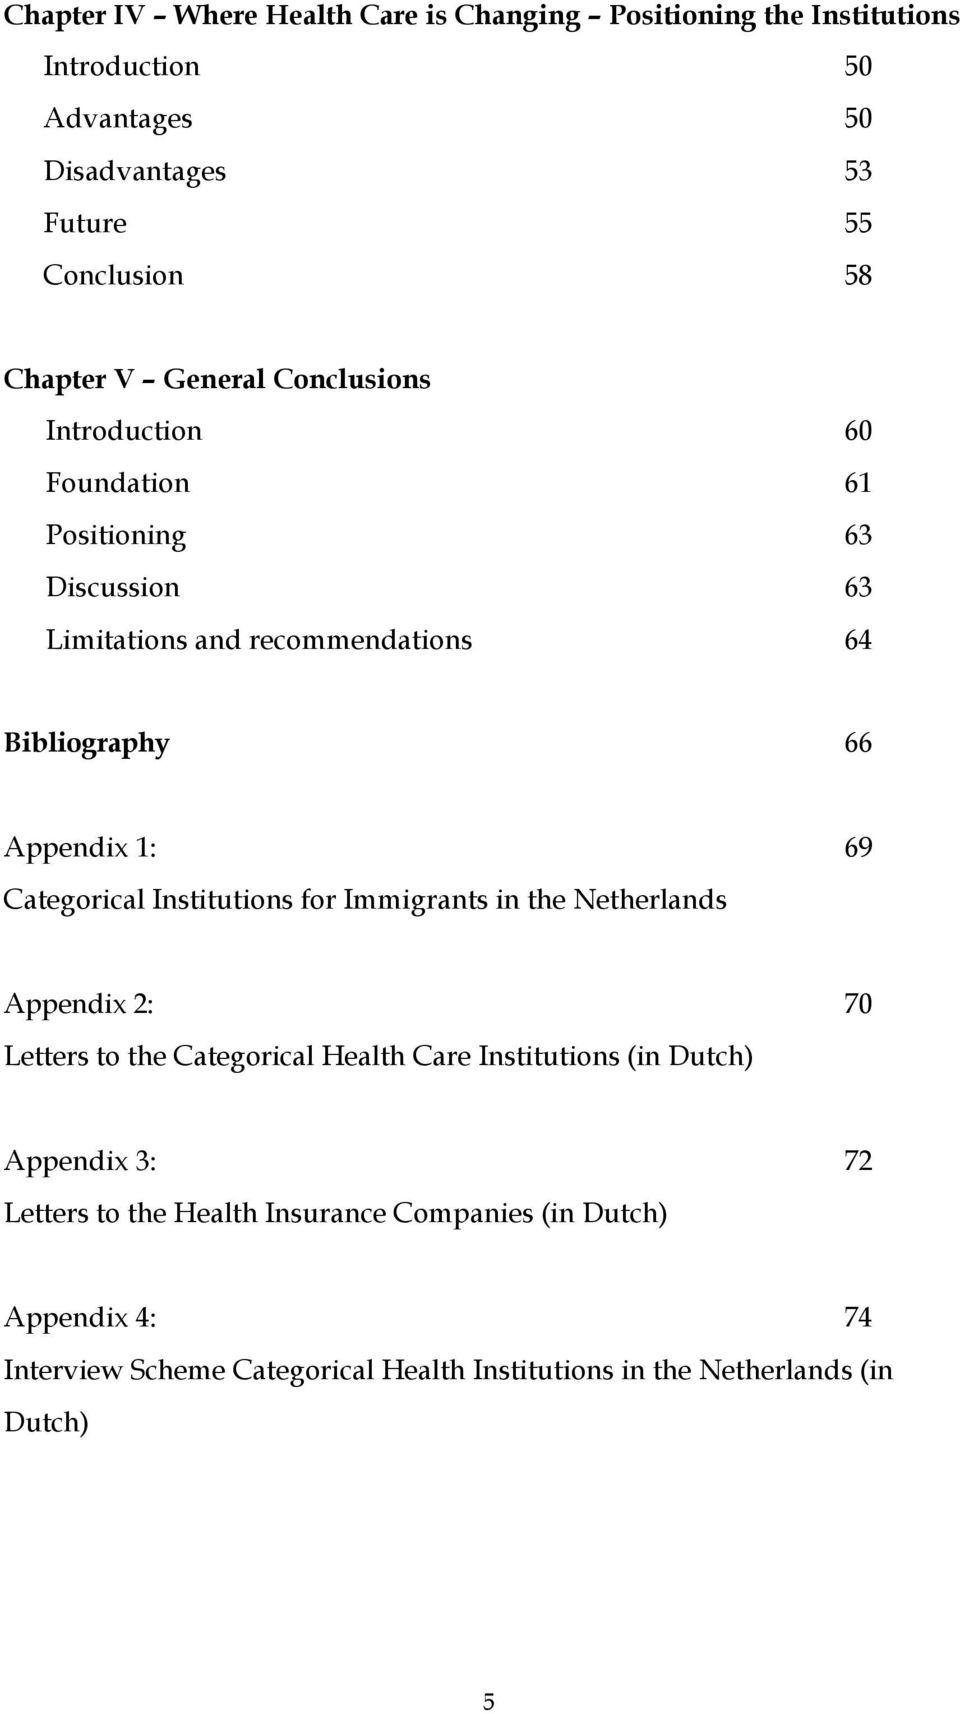 Categorical Institutions for Immigrants in the Netherlands Appendix 2: 70 Letters to the Categorical Health Care Institutions (in Dutch) Appendix 3: